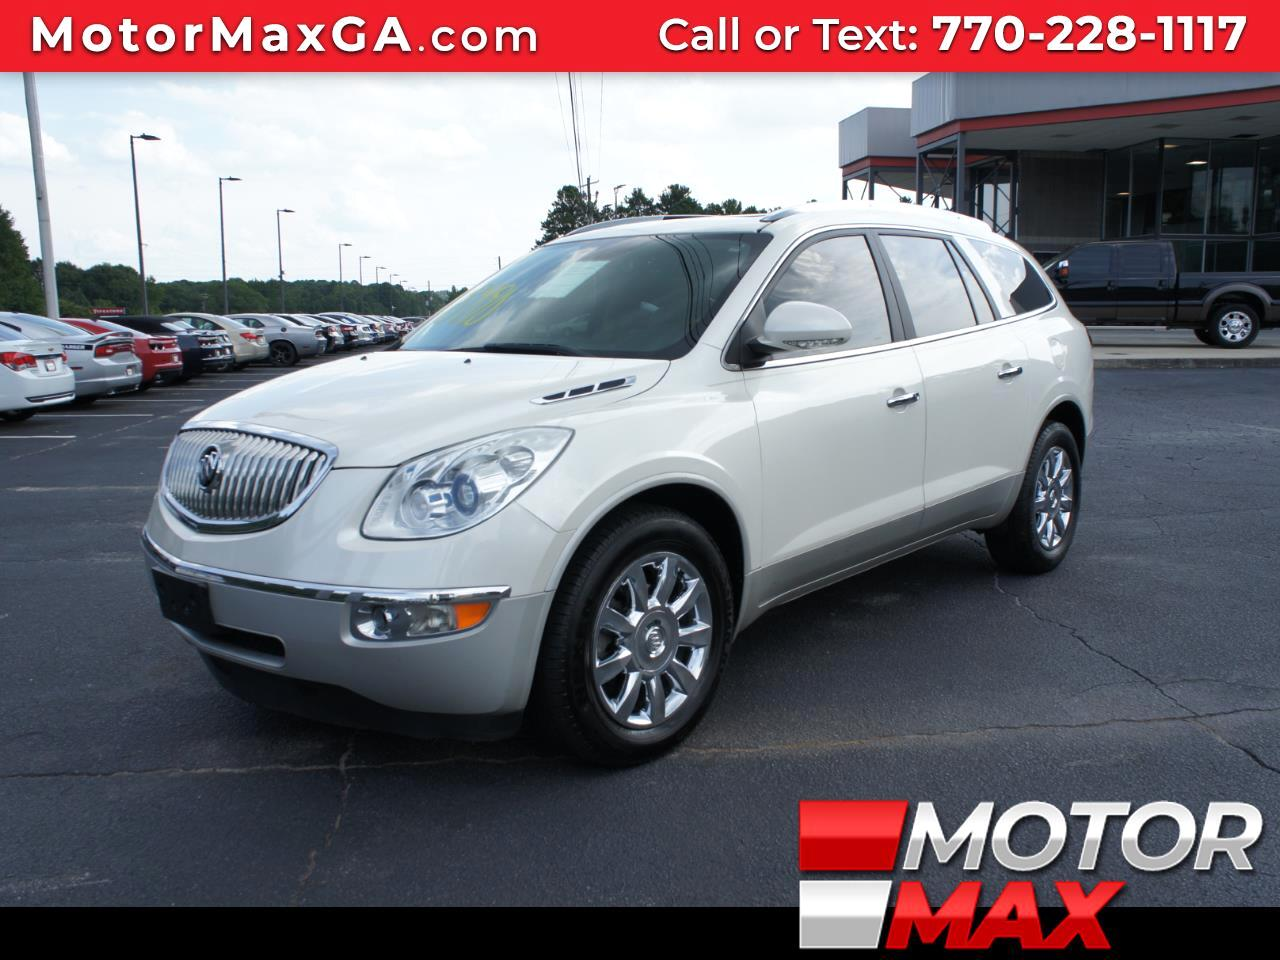 2011 Buick Enclave CXL AWD 4dr SUV